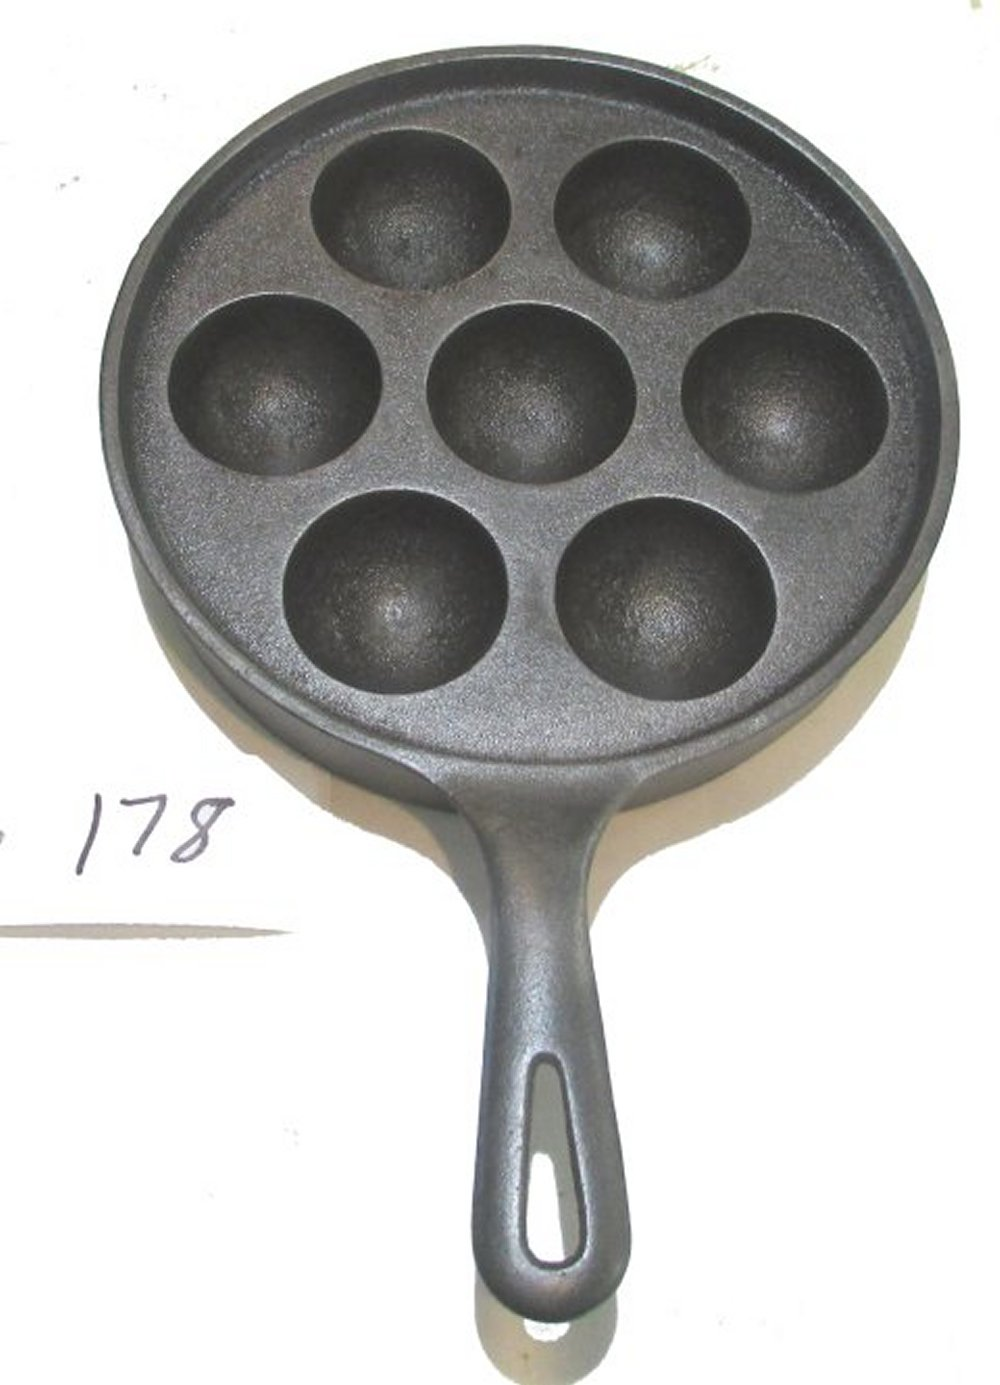 #32 Griswold Egg Poacher